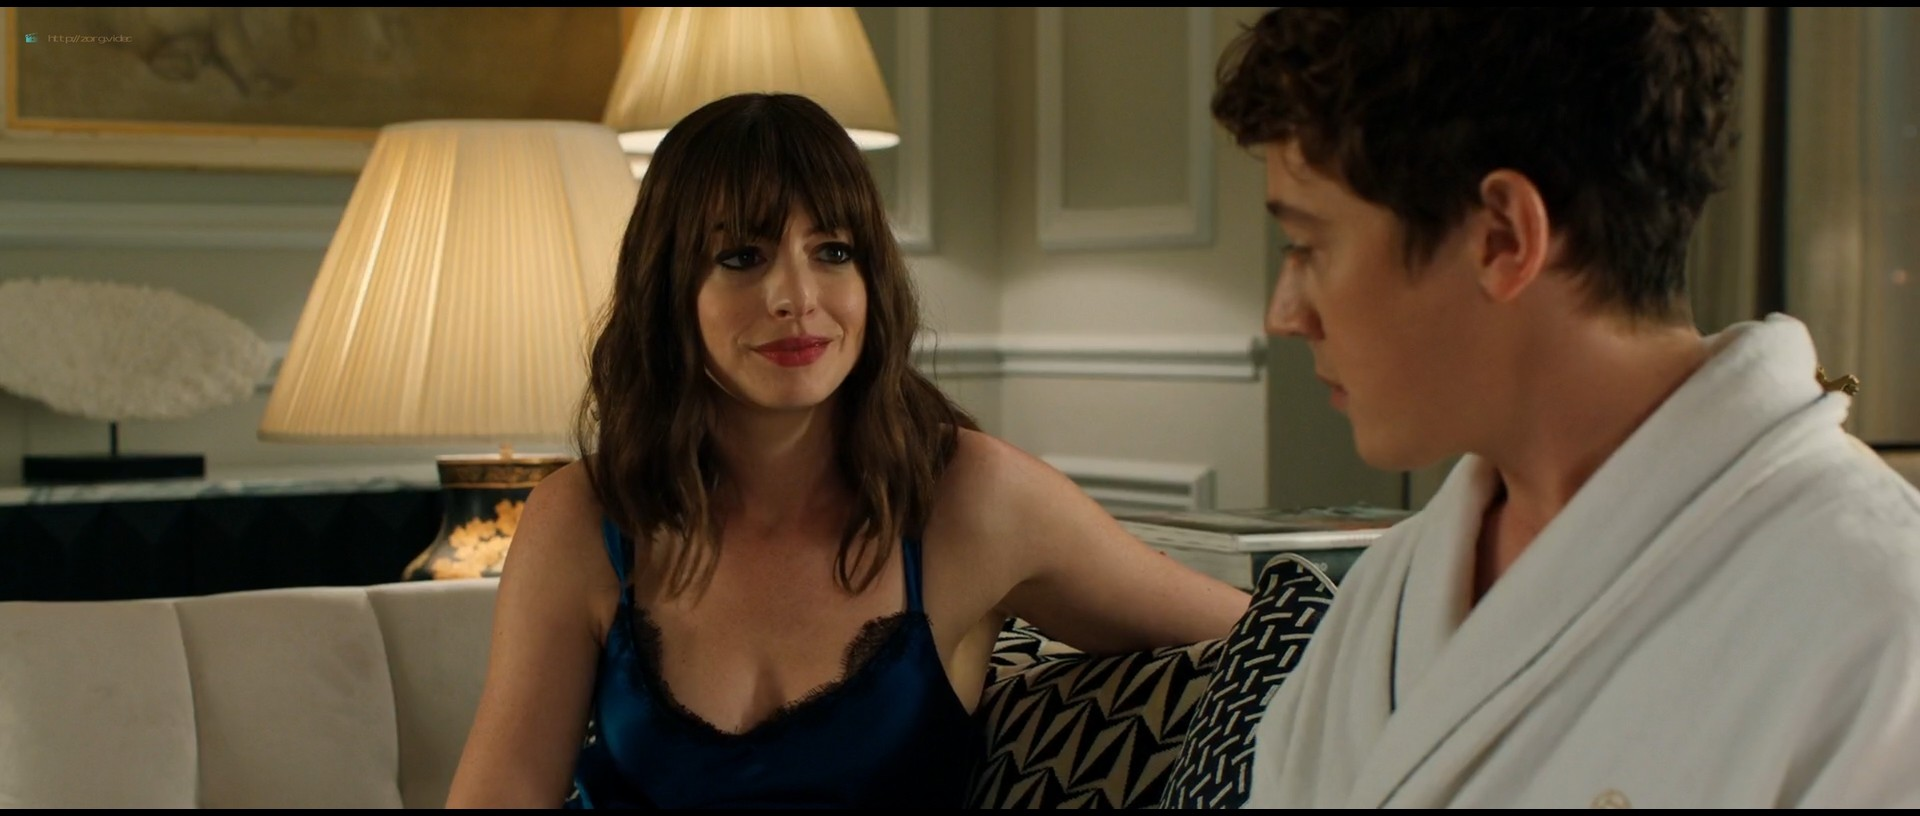 Anne Hathaway hot and sexy - The Hustle (2019) HD 1080p Web (4)